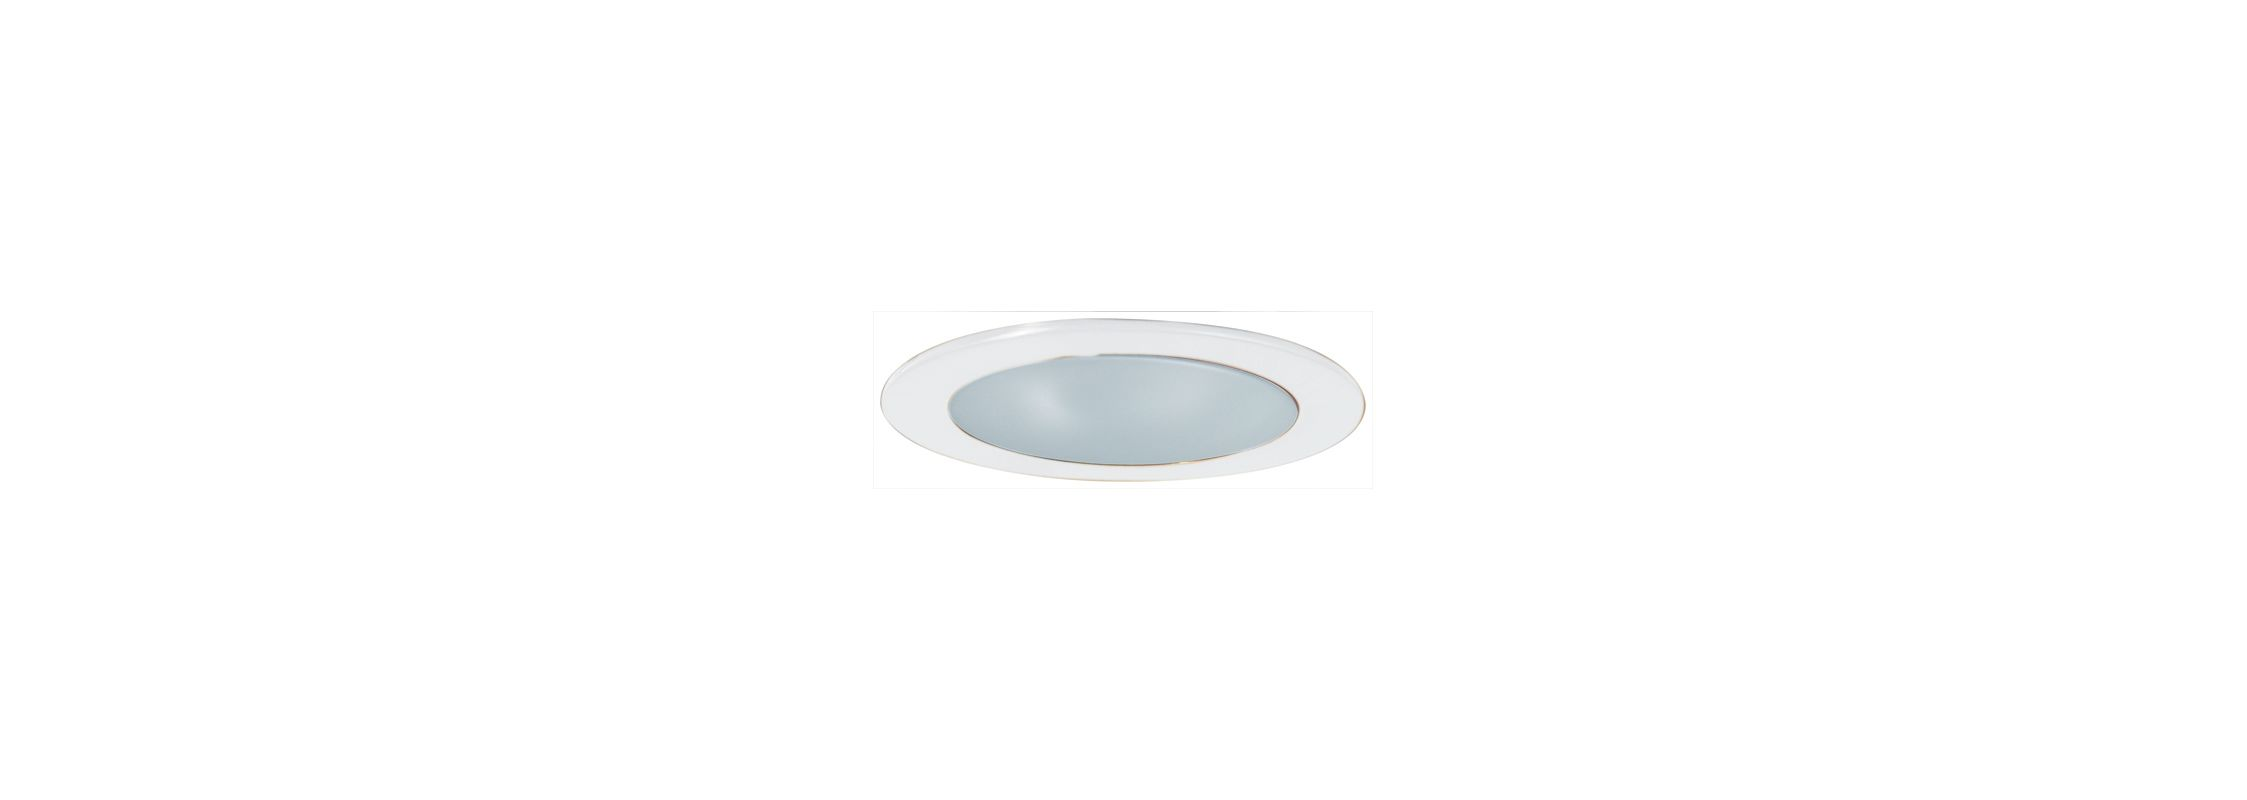 "Elco EL9112 4"" CFL Shower Trim with Frosted Lens and Reflector White"